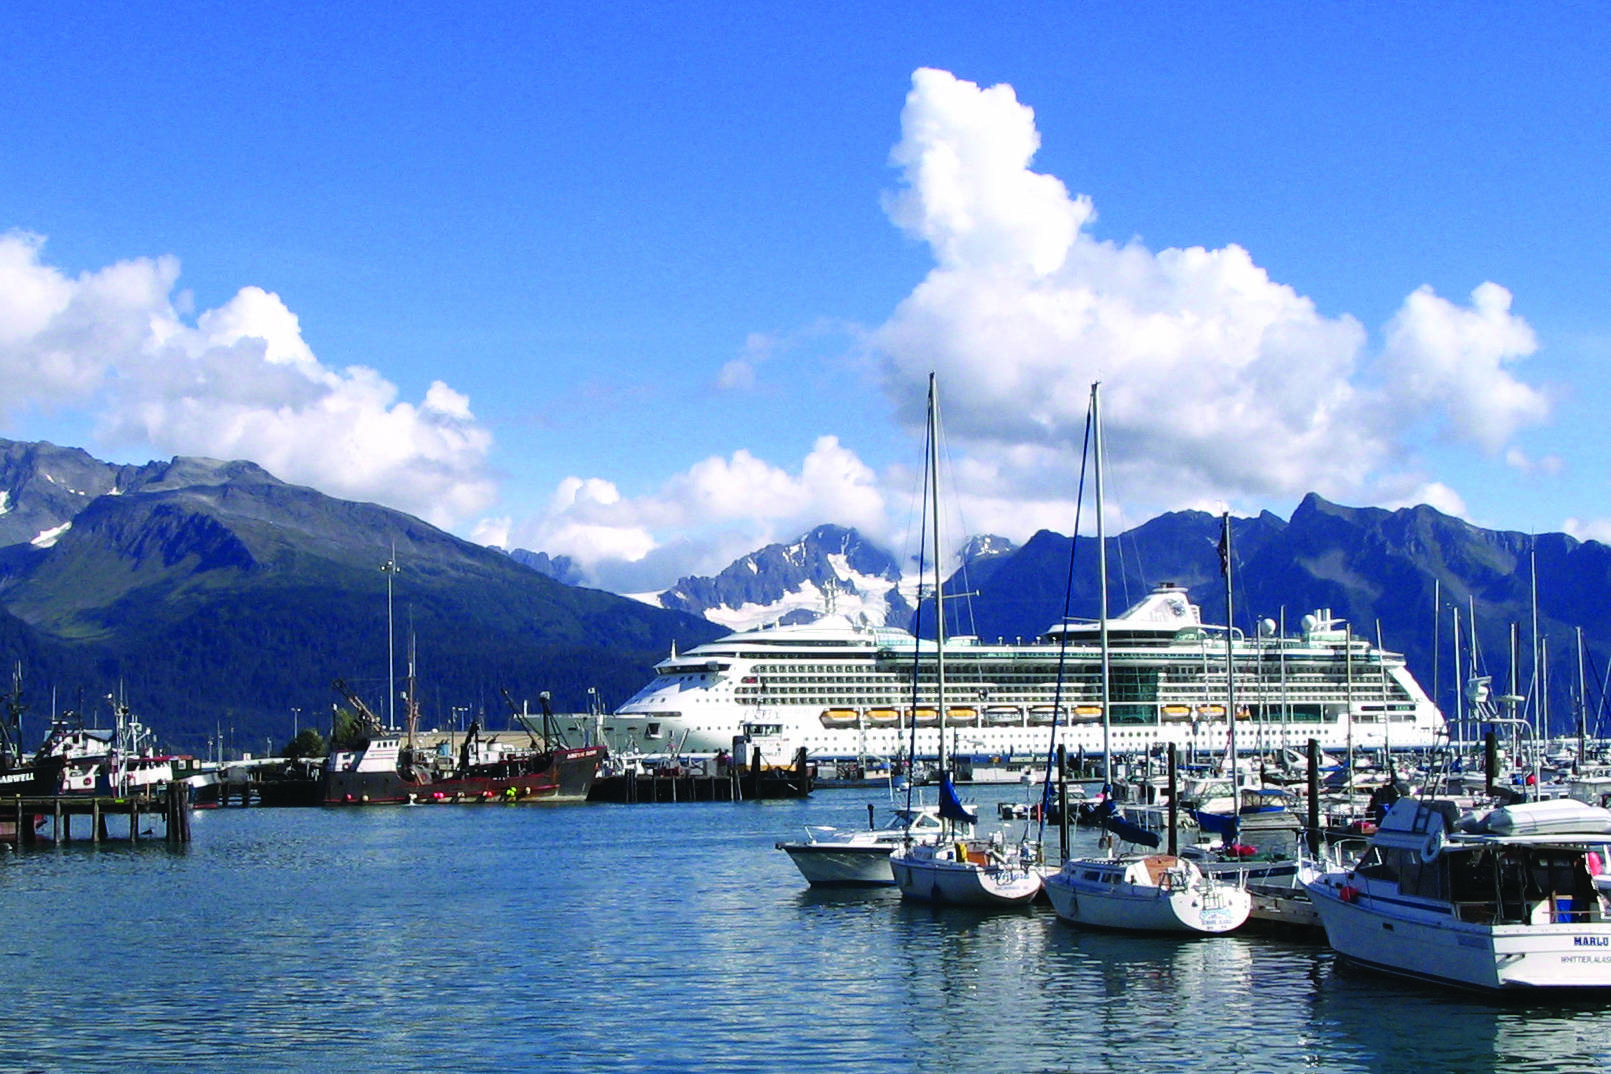 """This Sept. 7, 2007, file photo shows Royal Caribbean's """"Radiance of the Seas"""" docked in Seward. (AP Photo/Beth J. Harpaz, File)"""